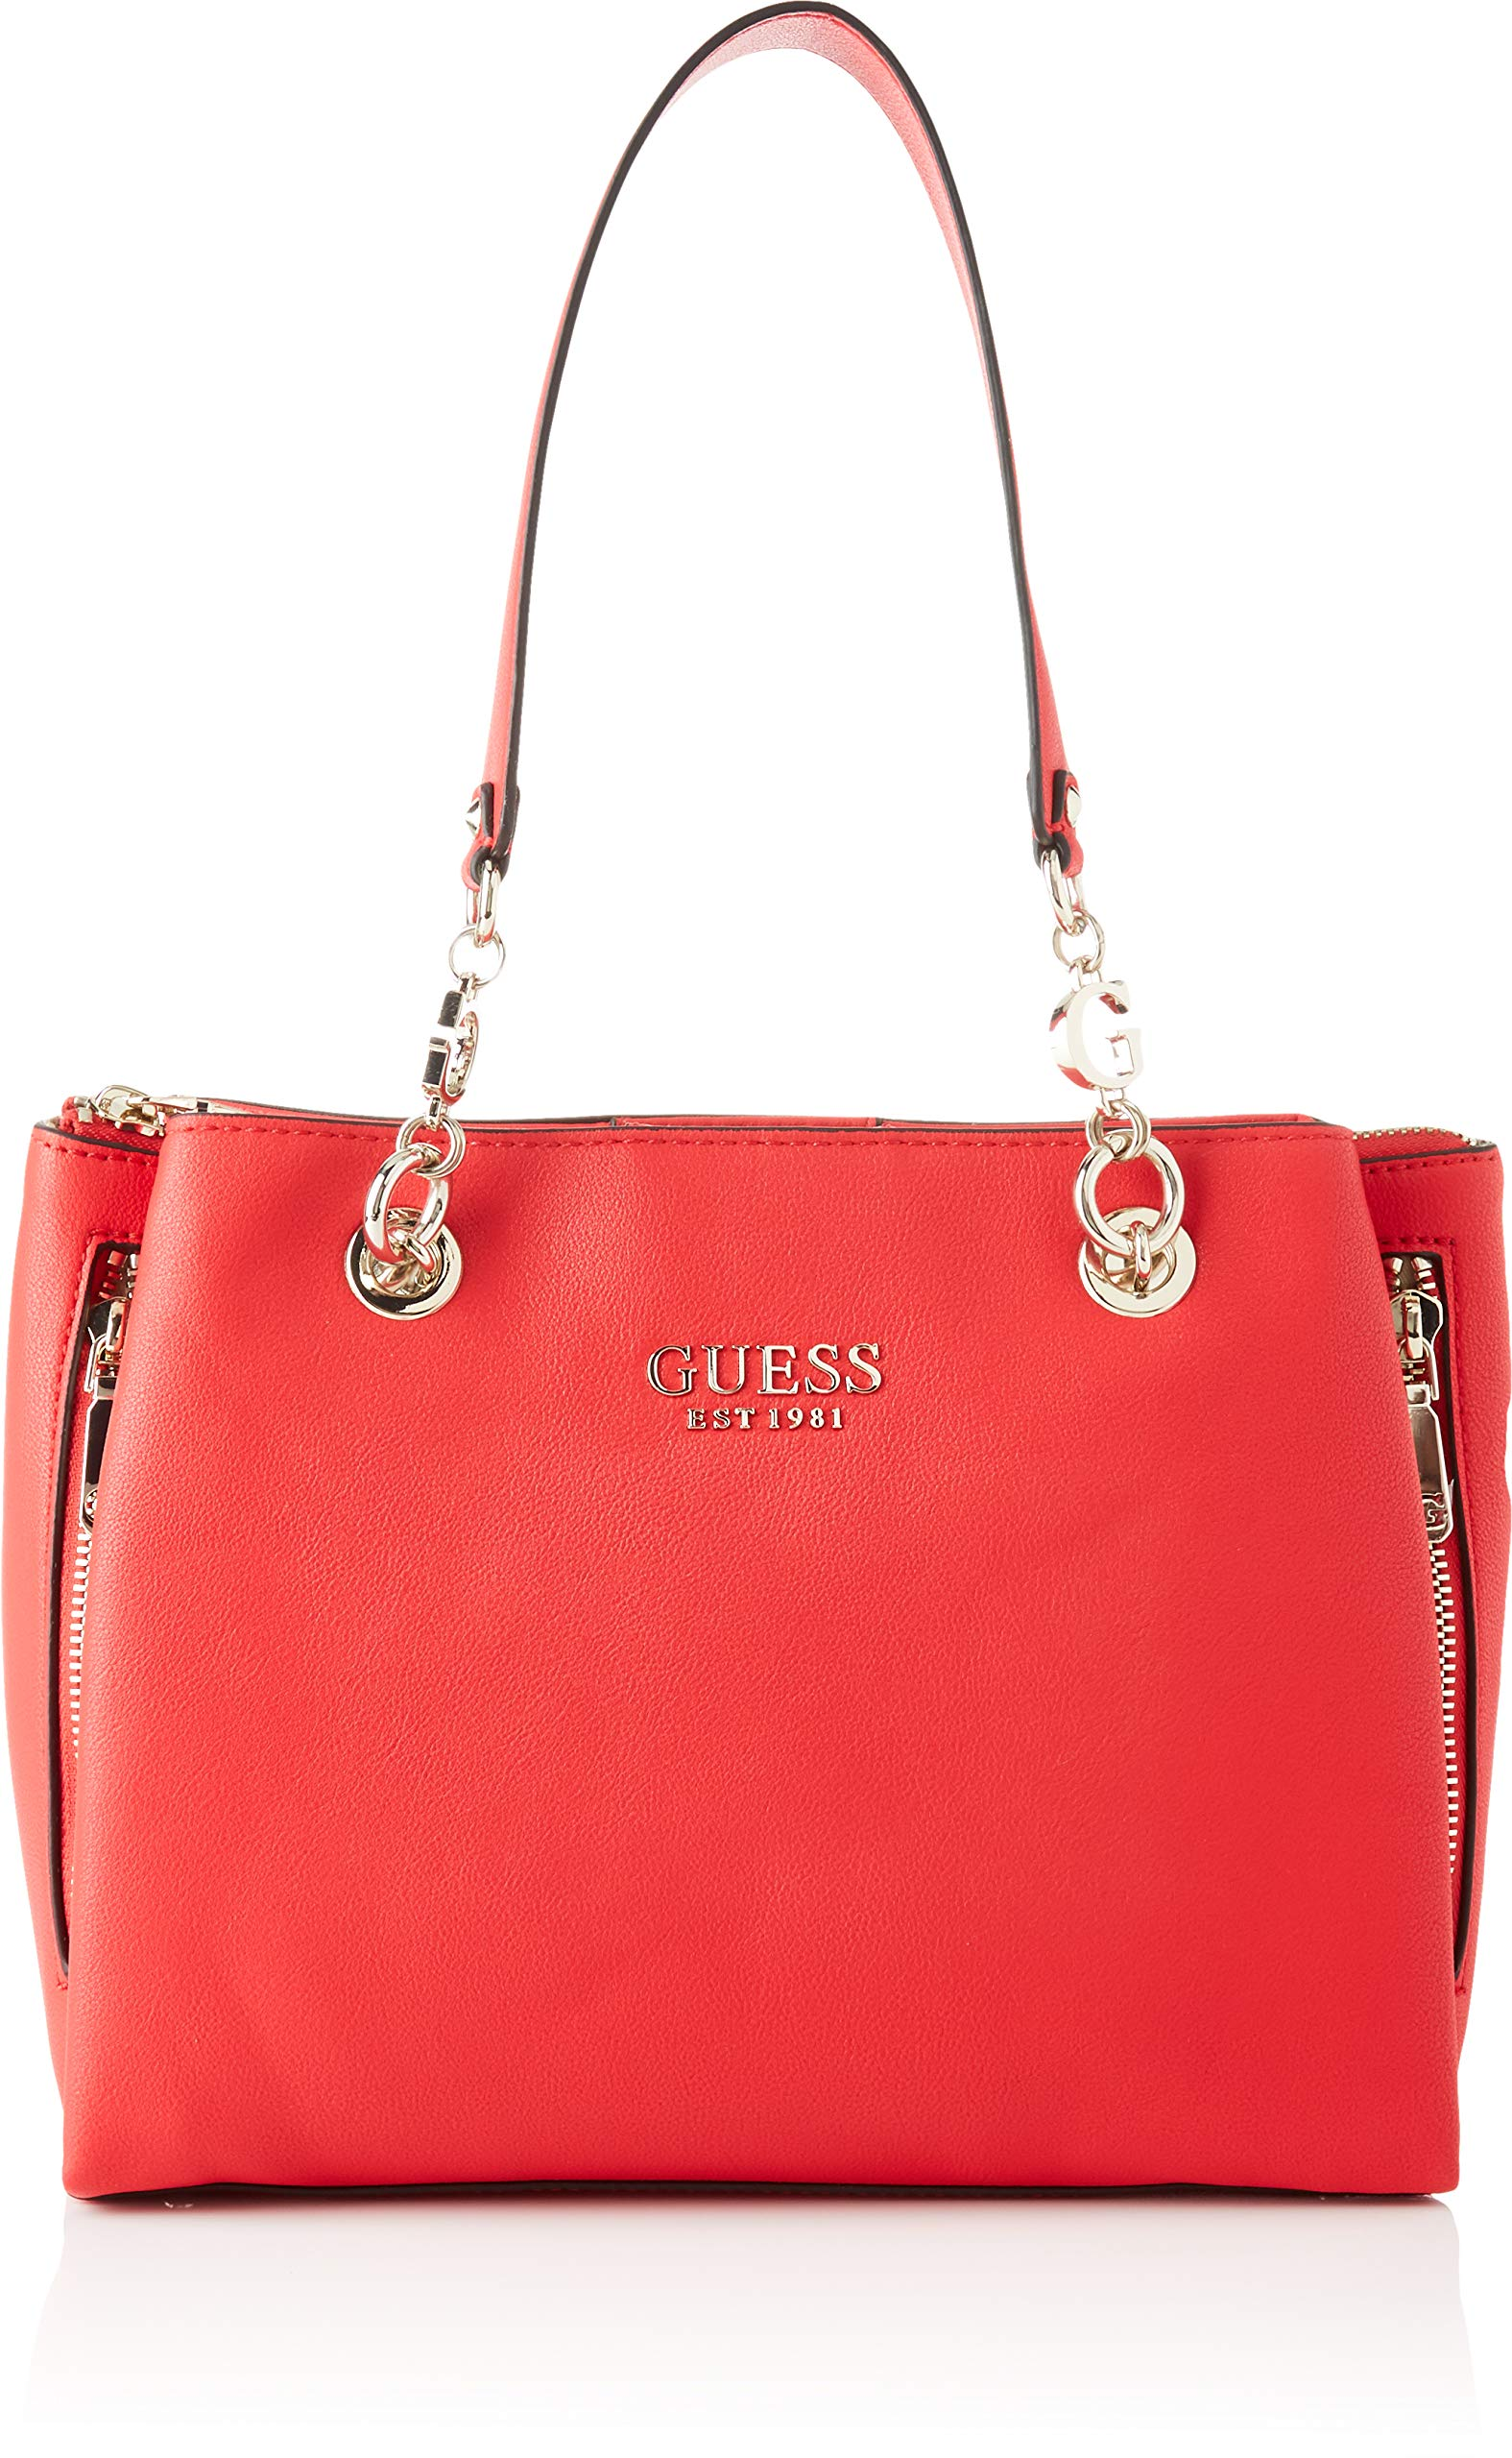 GUESS G CHAIN GIRLFRIEND SATCHEL